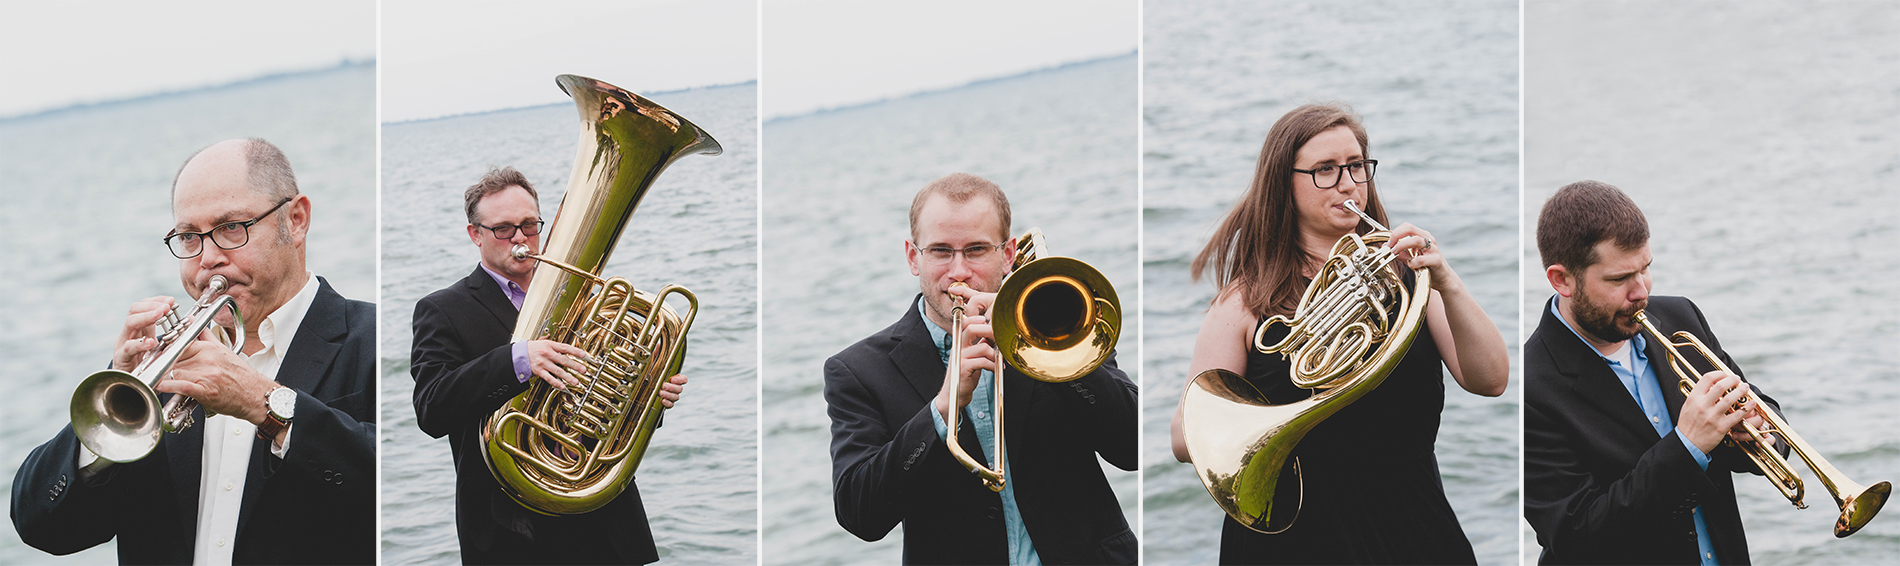 north-of-canada-brass-quintet-detroit-michigan-grosse-pointe-band-photographer-15